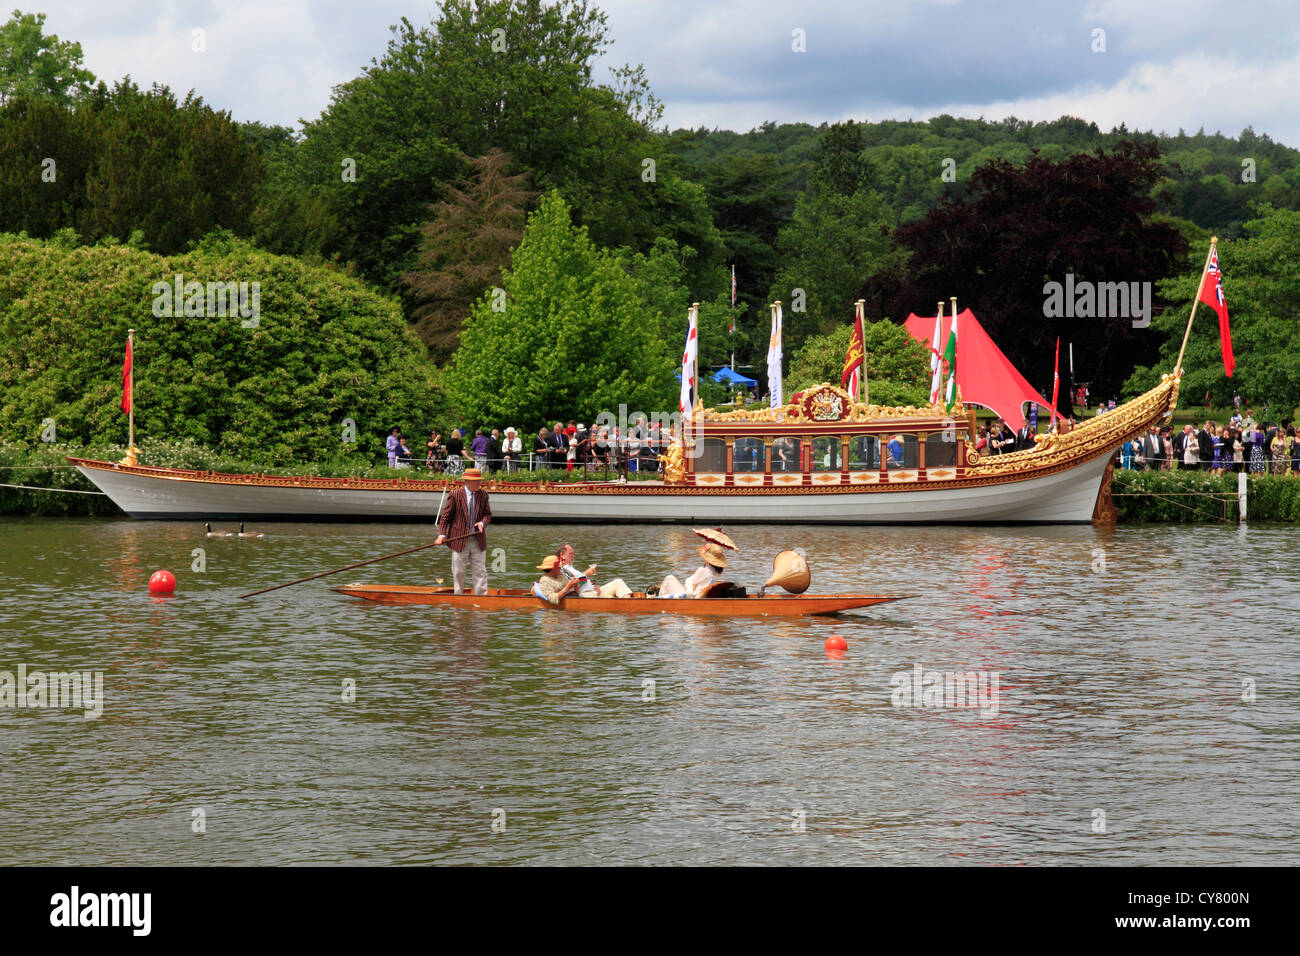 England Buckinghamshire, Royal barge & punt on river Thames near Hambleden - Stock Image